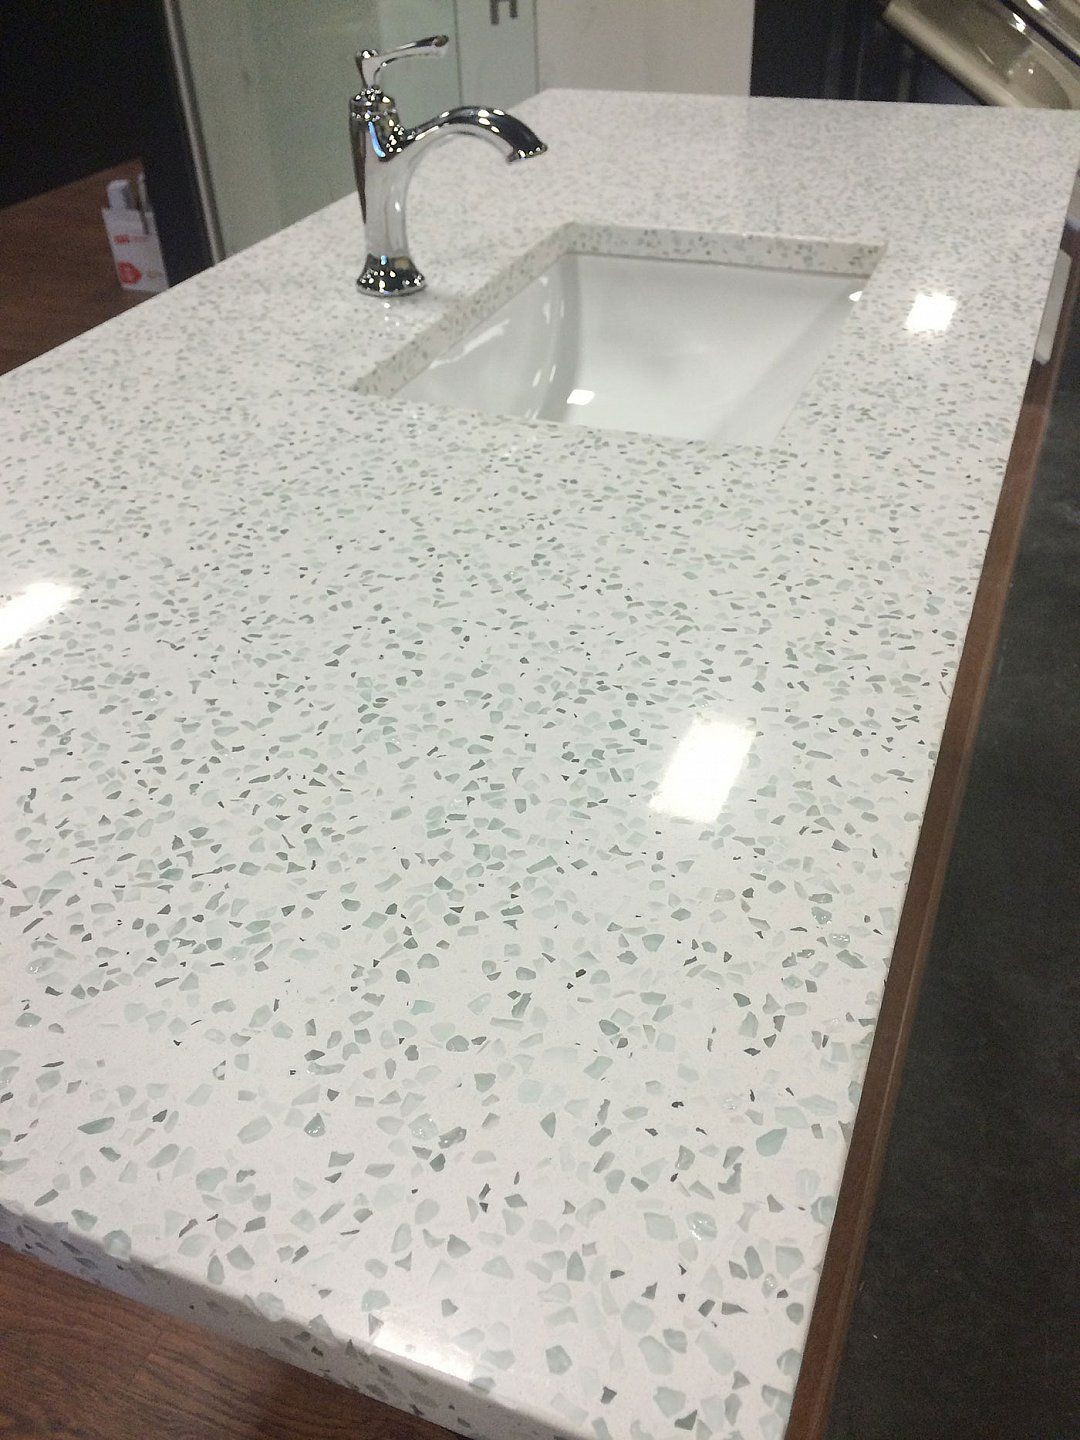 Best ideas about DIY Recycled Glass Countertops . Save or Pin I am intrigued by recycled glass countertops They are a Now.